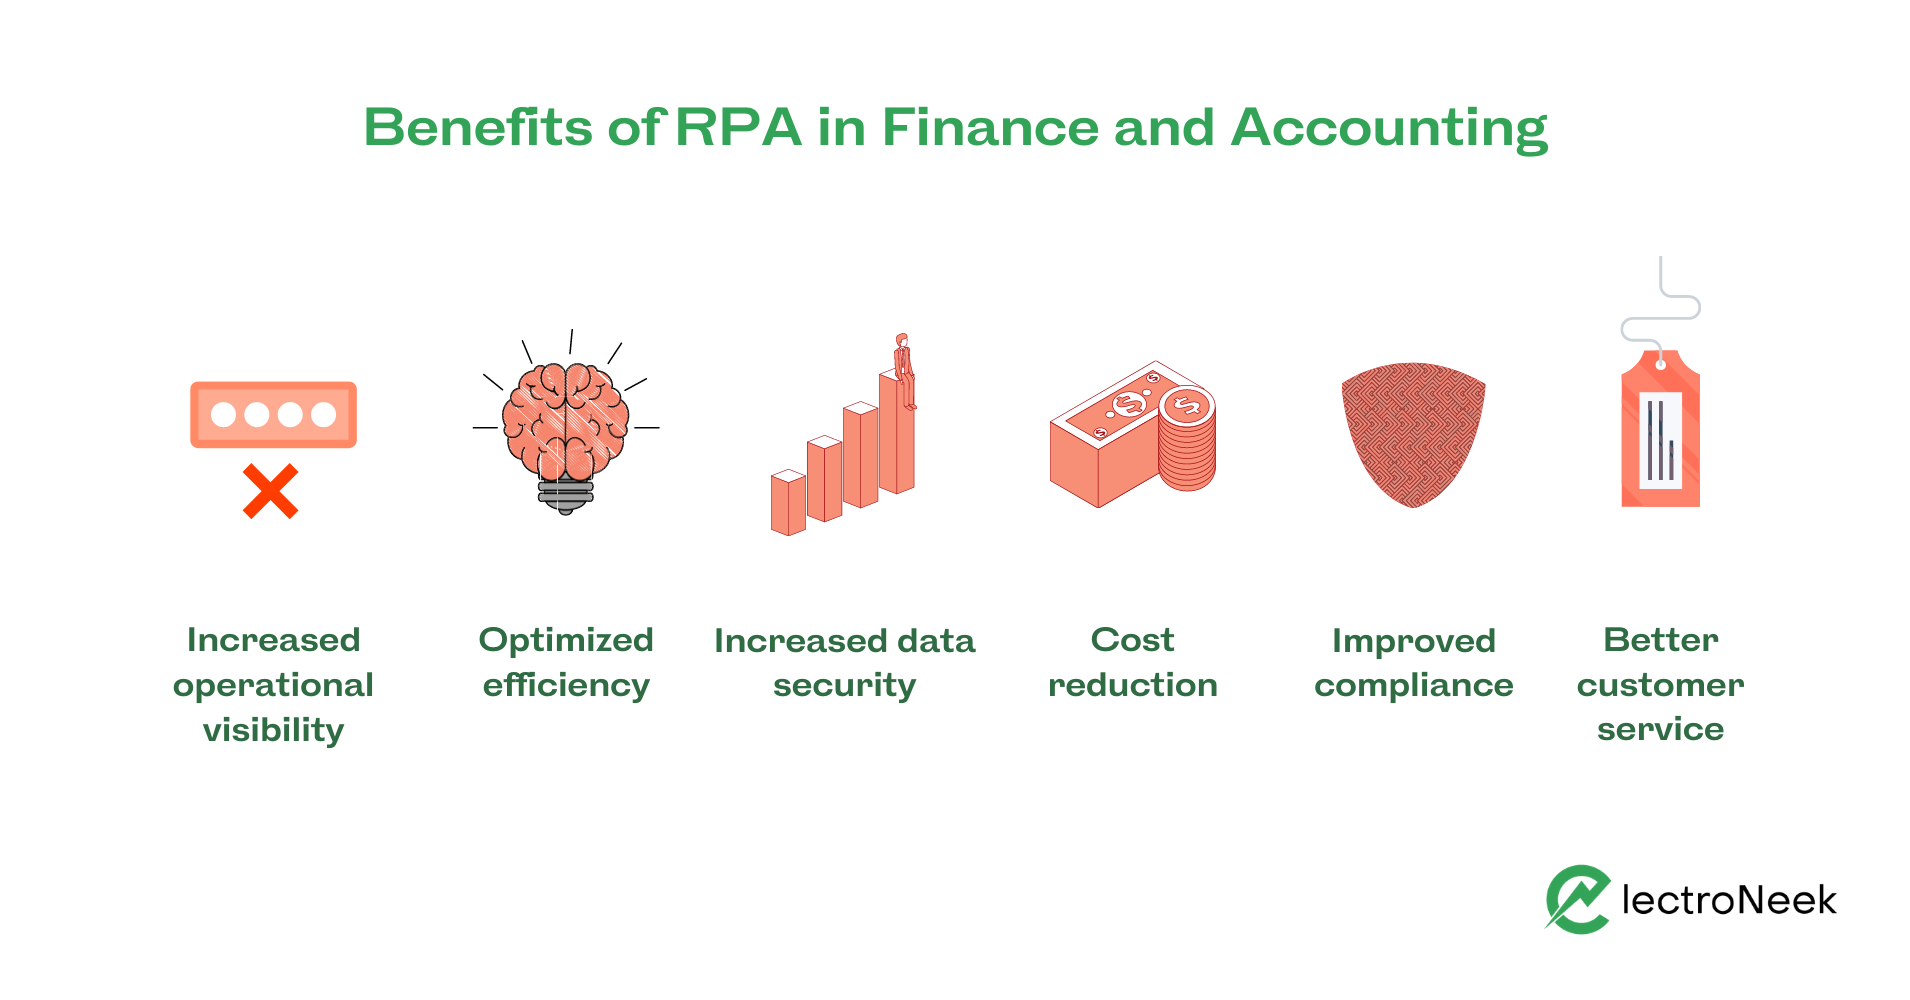 RPA in finance and accounting